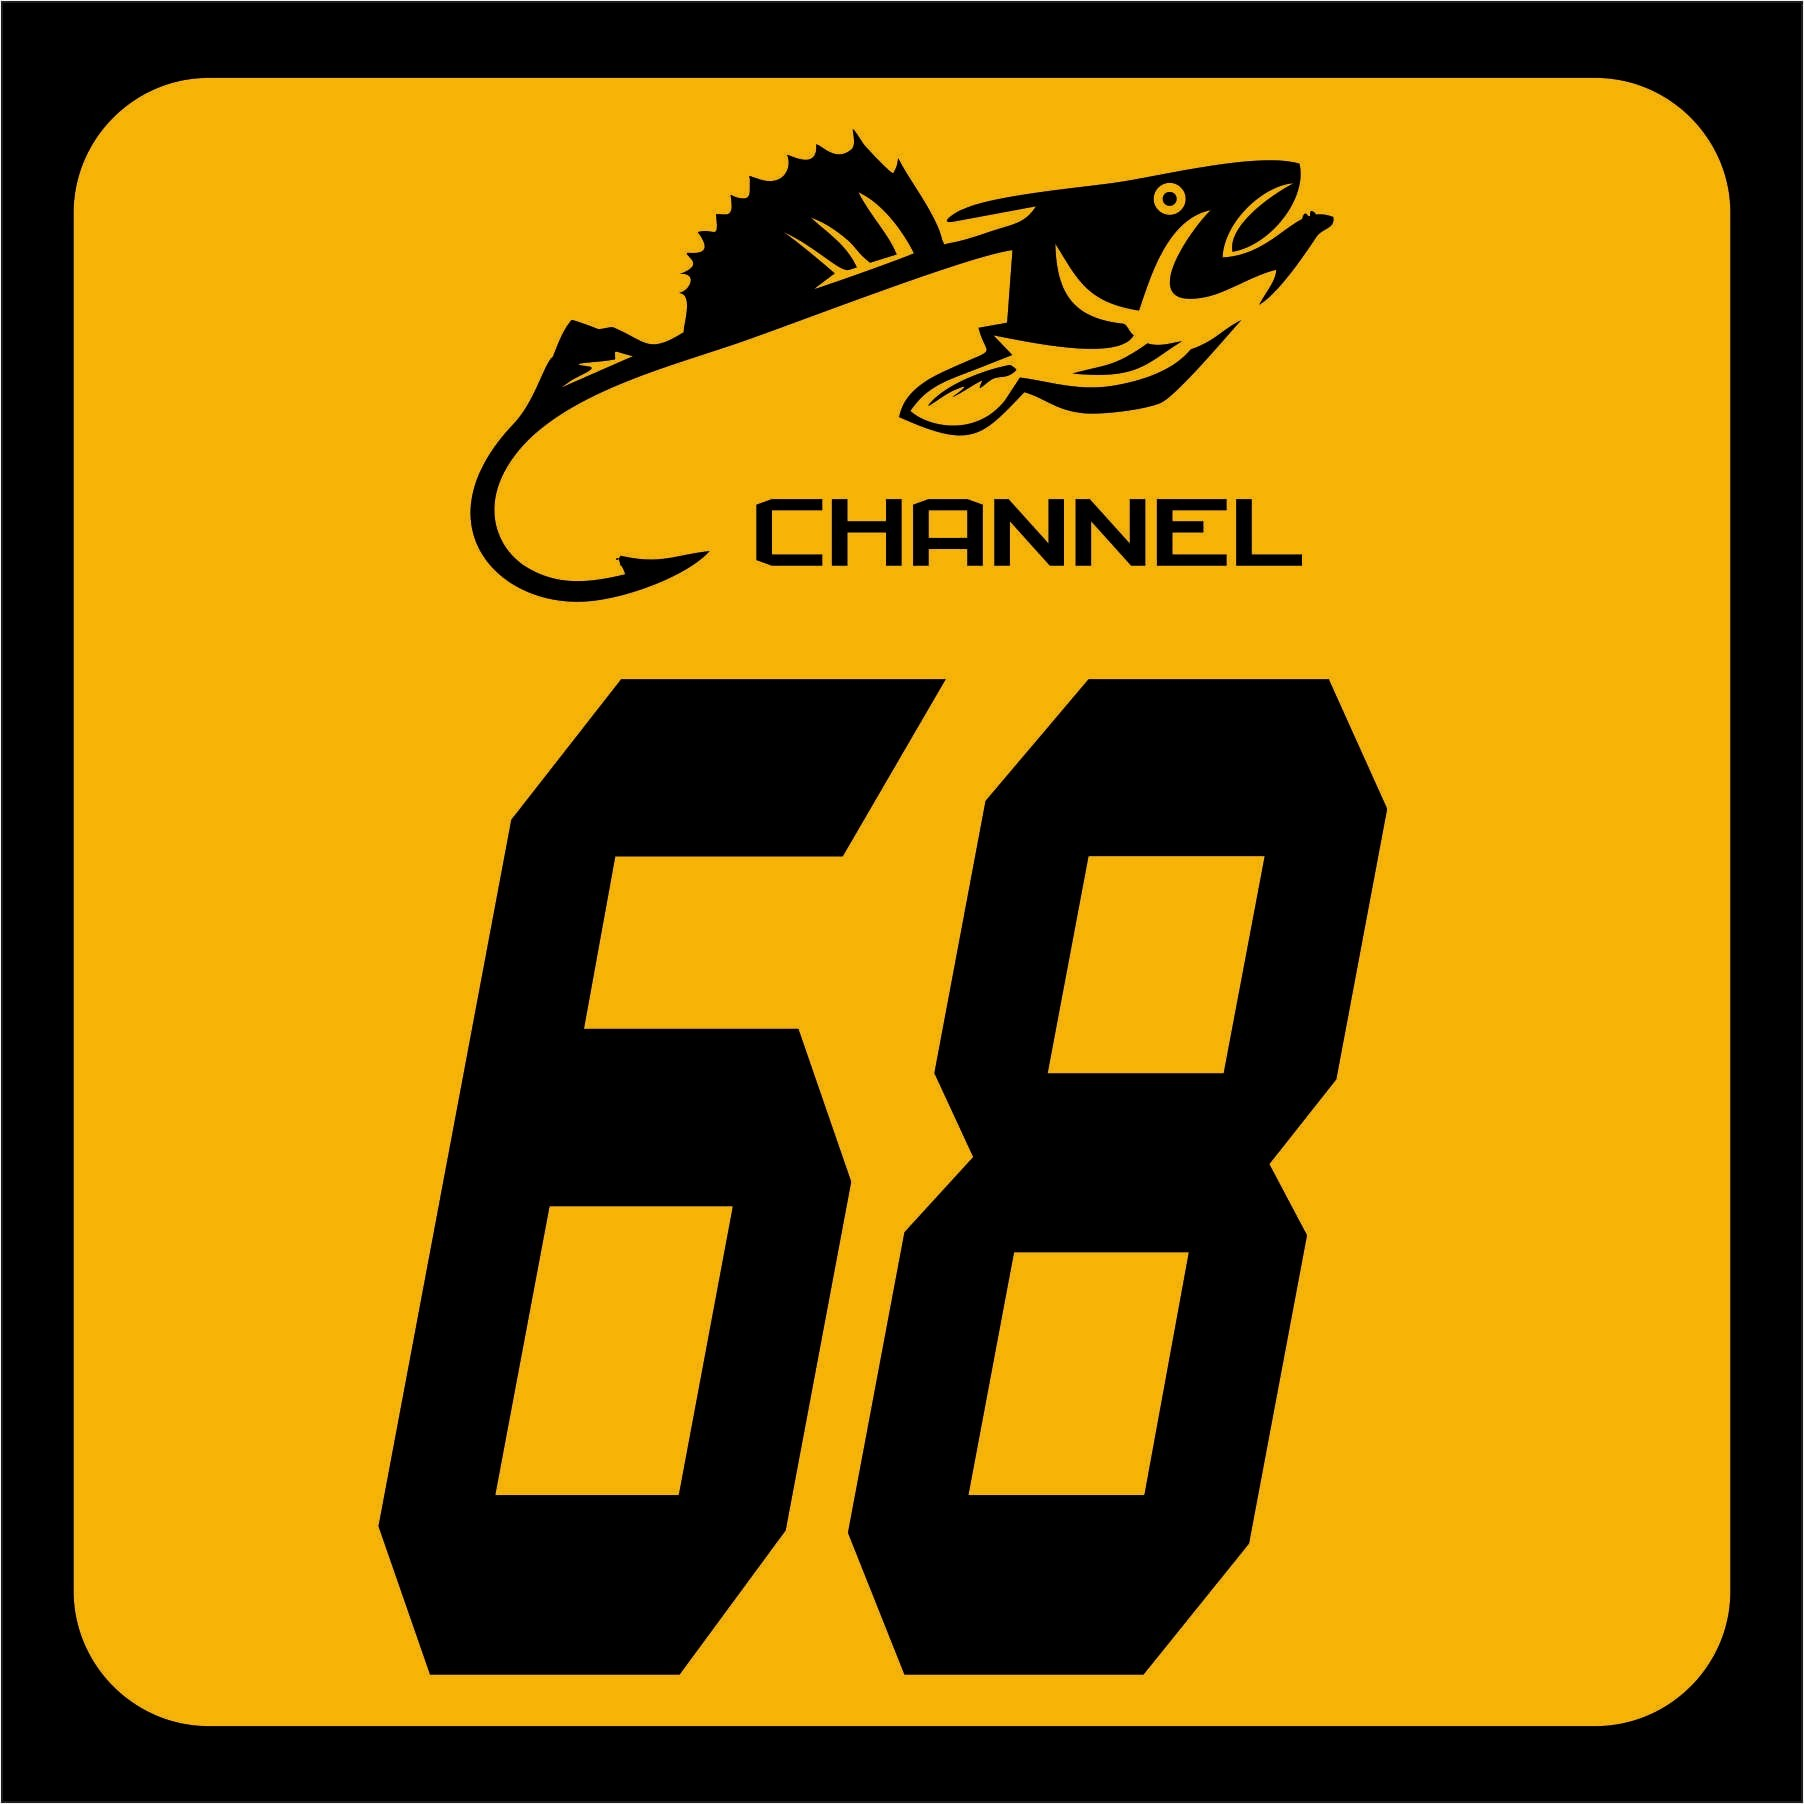 Channel 6-8